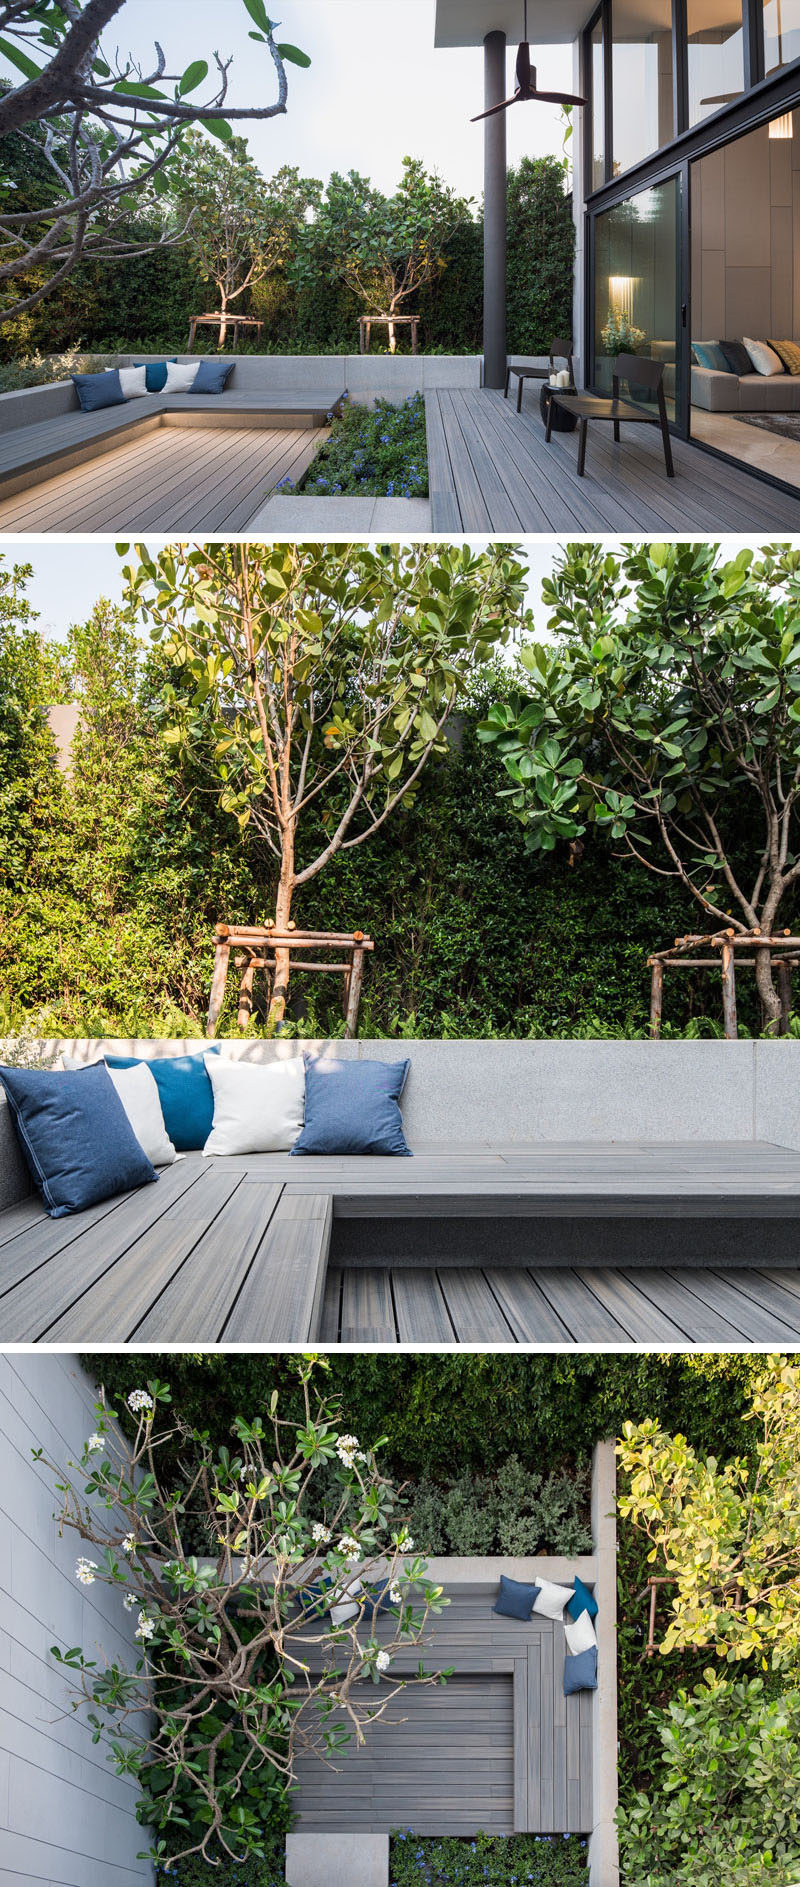 This small and modern backyard has a small path that connects the patio to a larger seating area with built-in wood benches and hidden lighting, that's surrounded by plants.